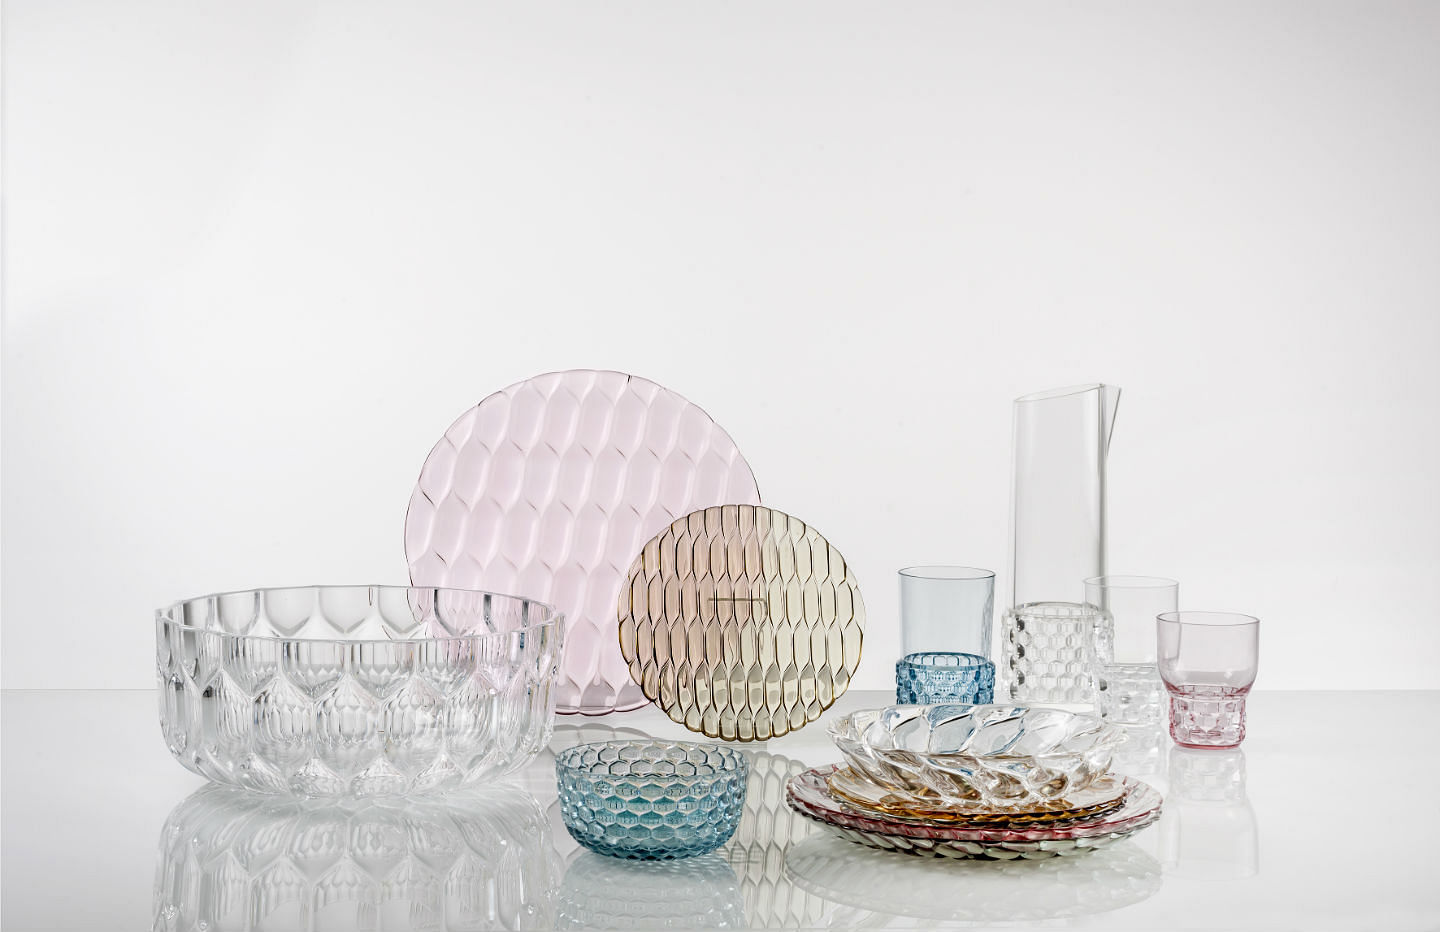 Kartell tableware acrylic tableware plates bowls & Tableware that looks like glass but is actually acrylic! | Home ...